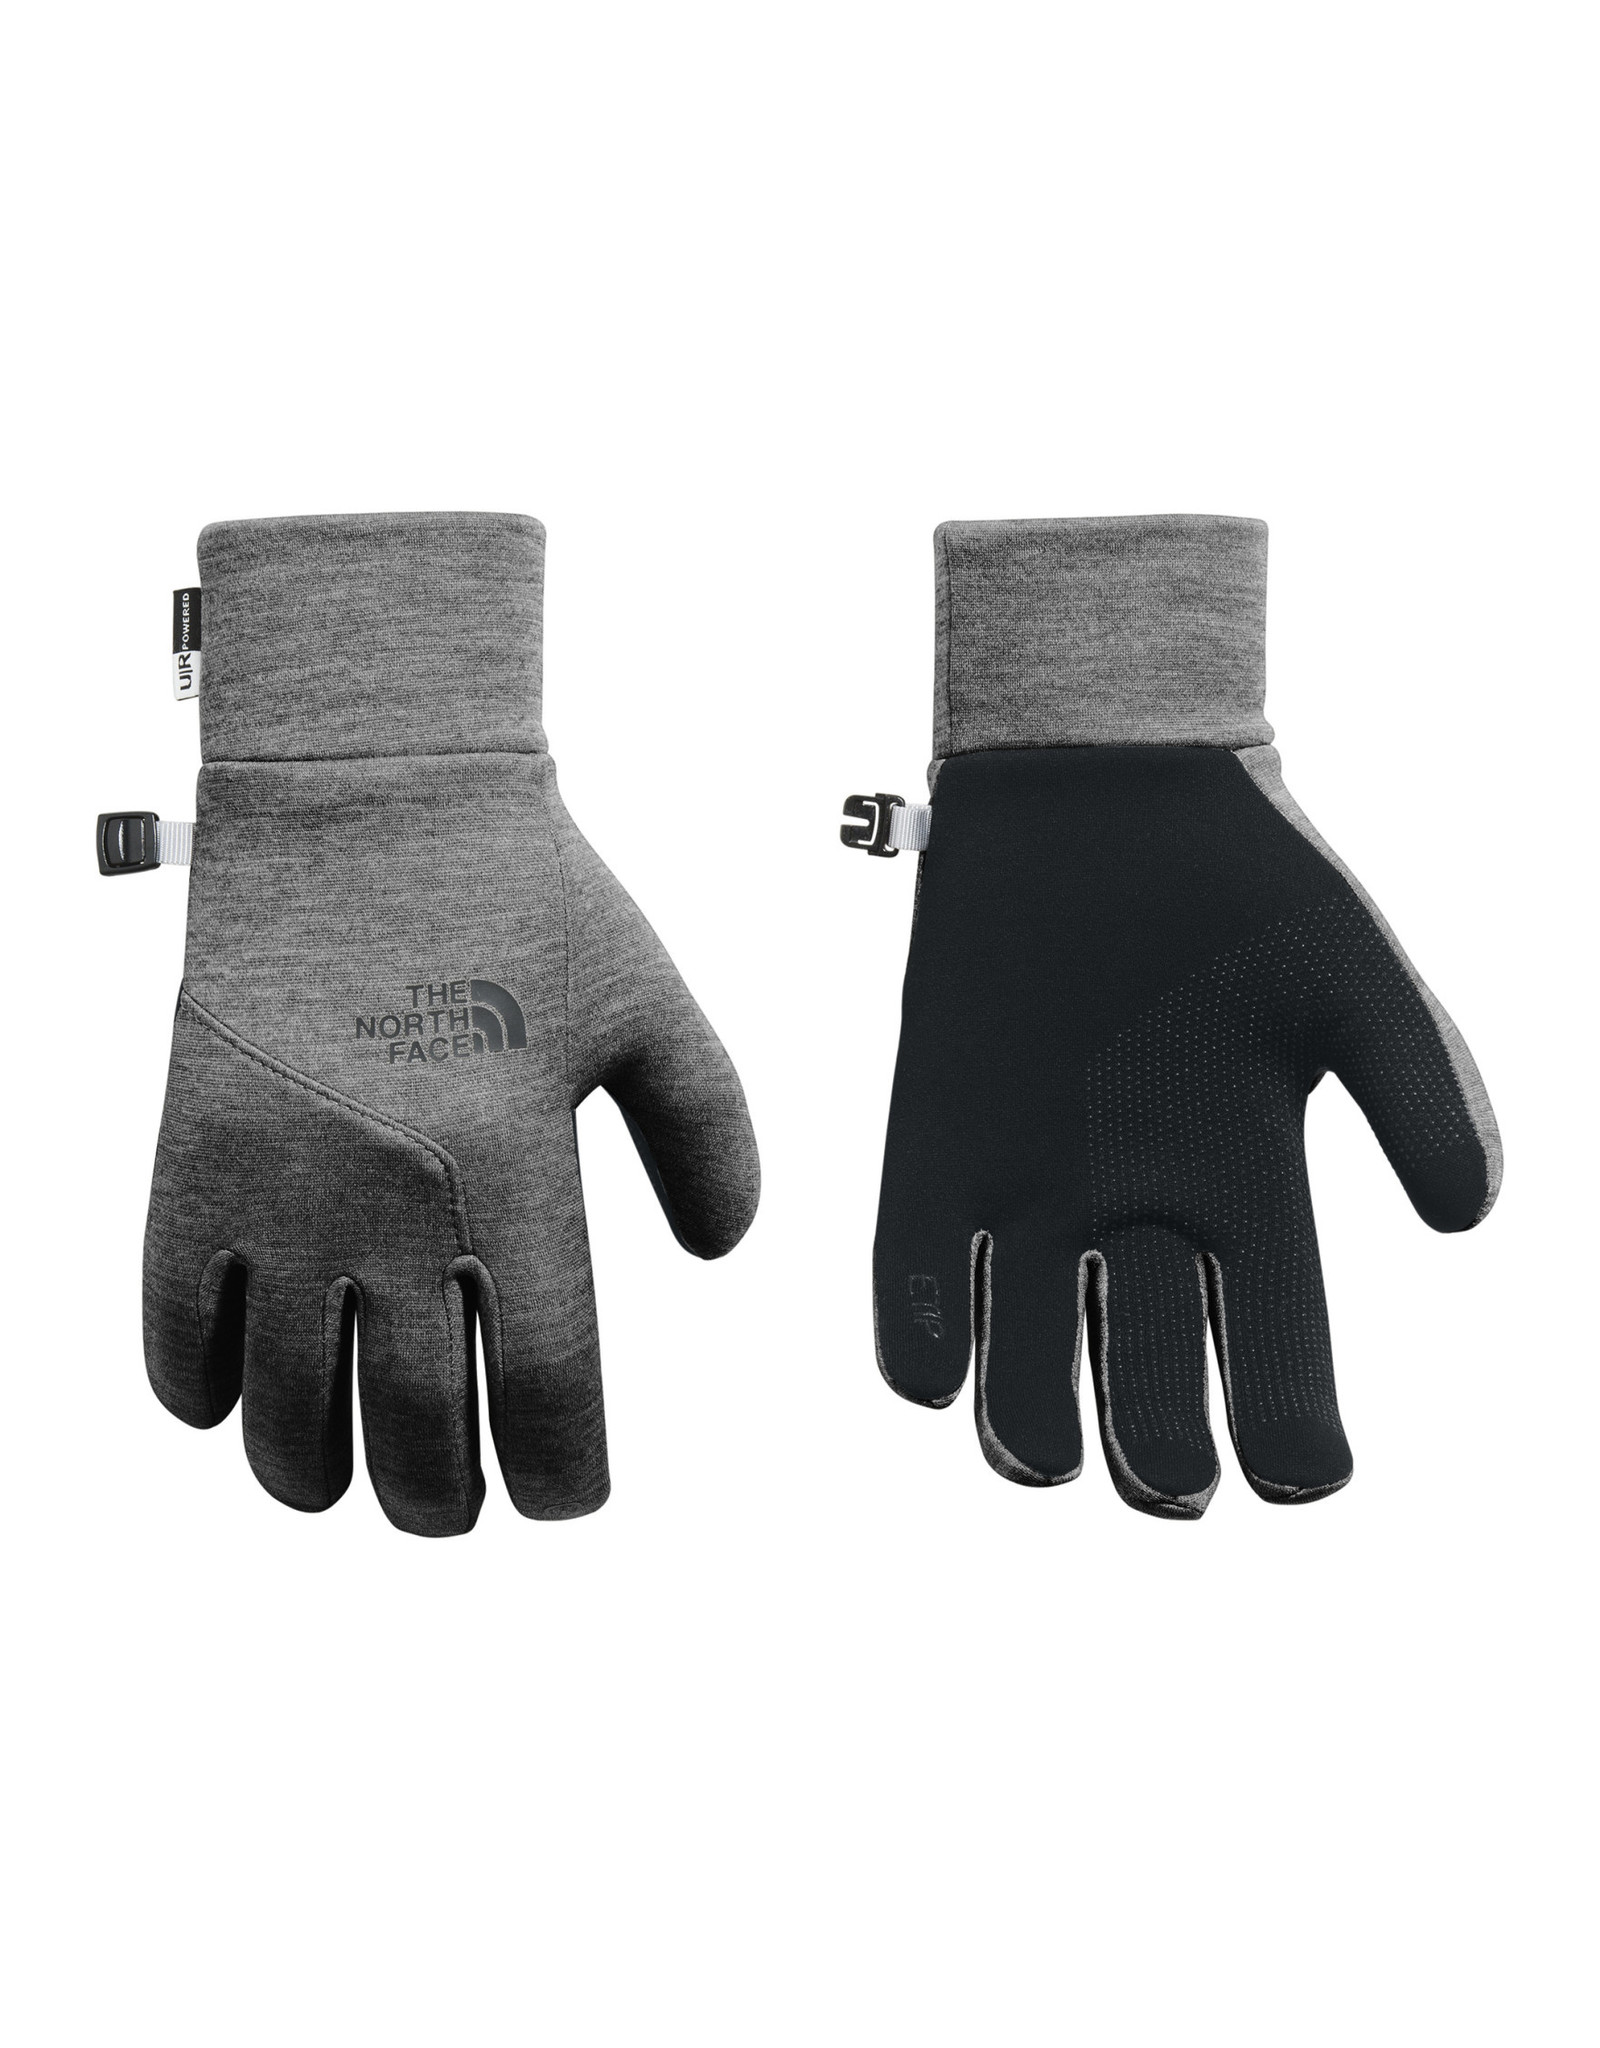 The North Face The North Face Women's Etip Glove